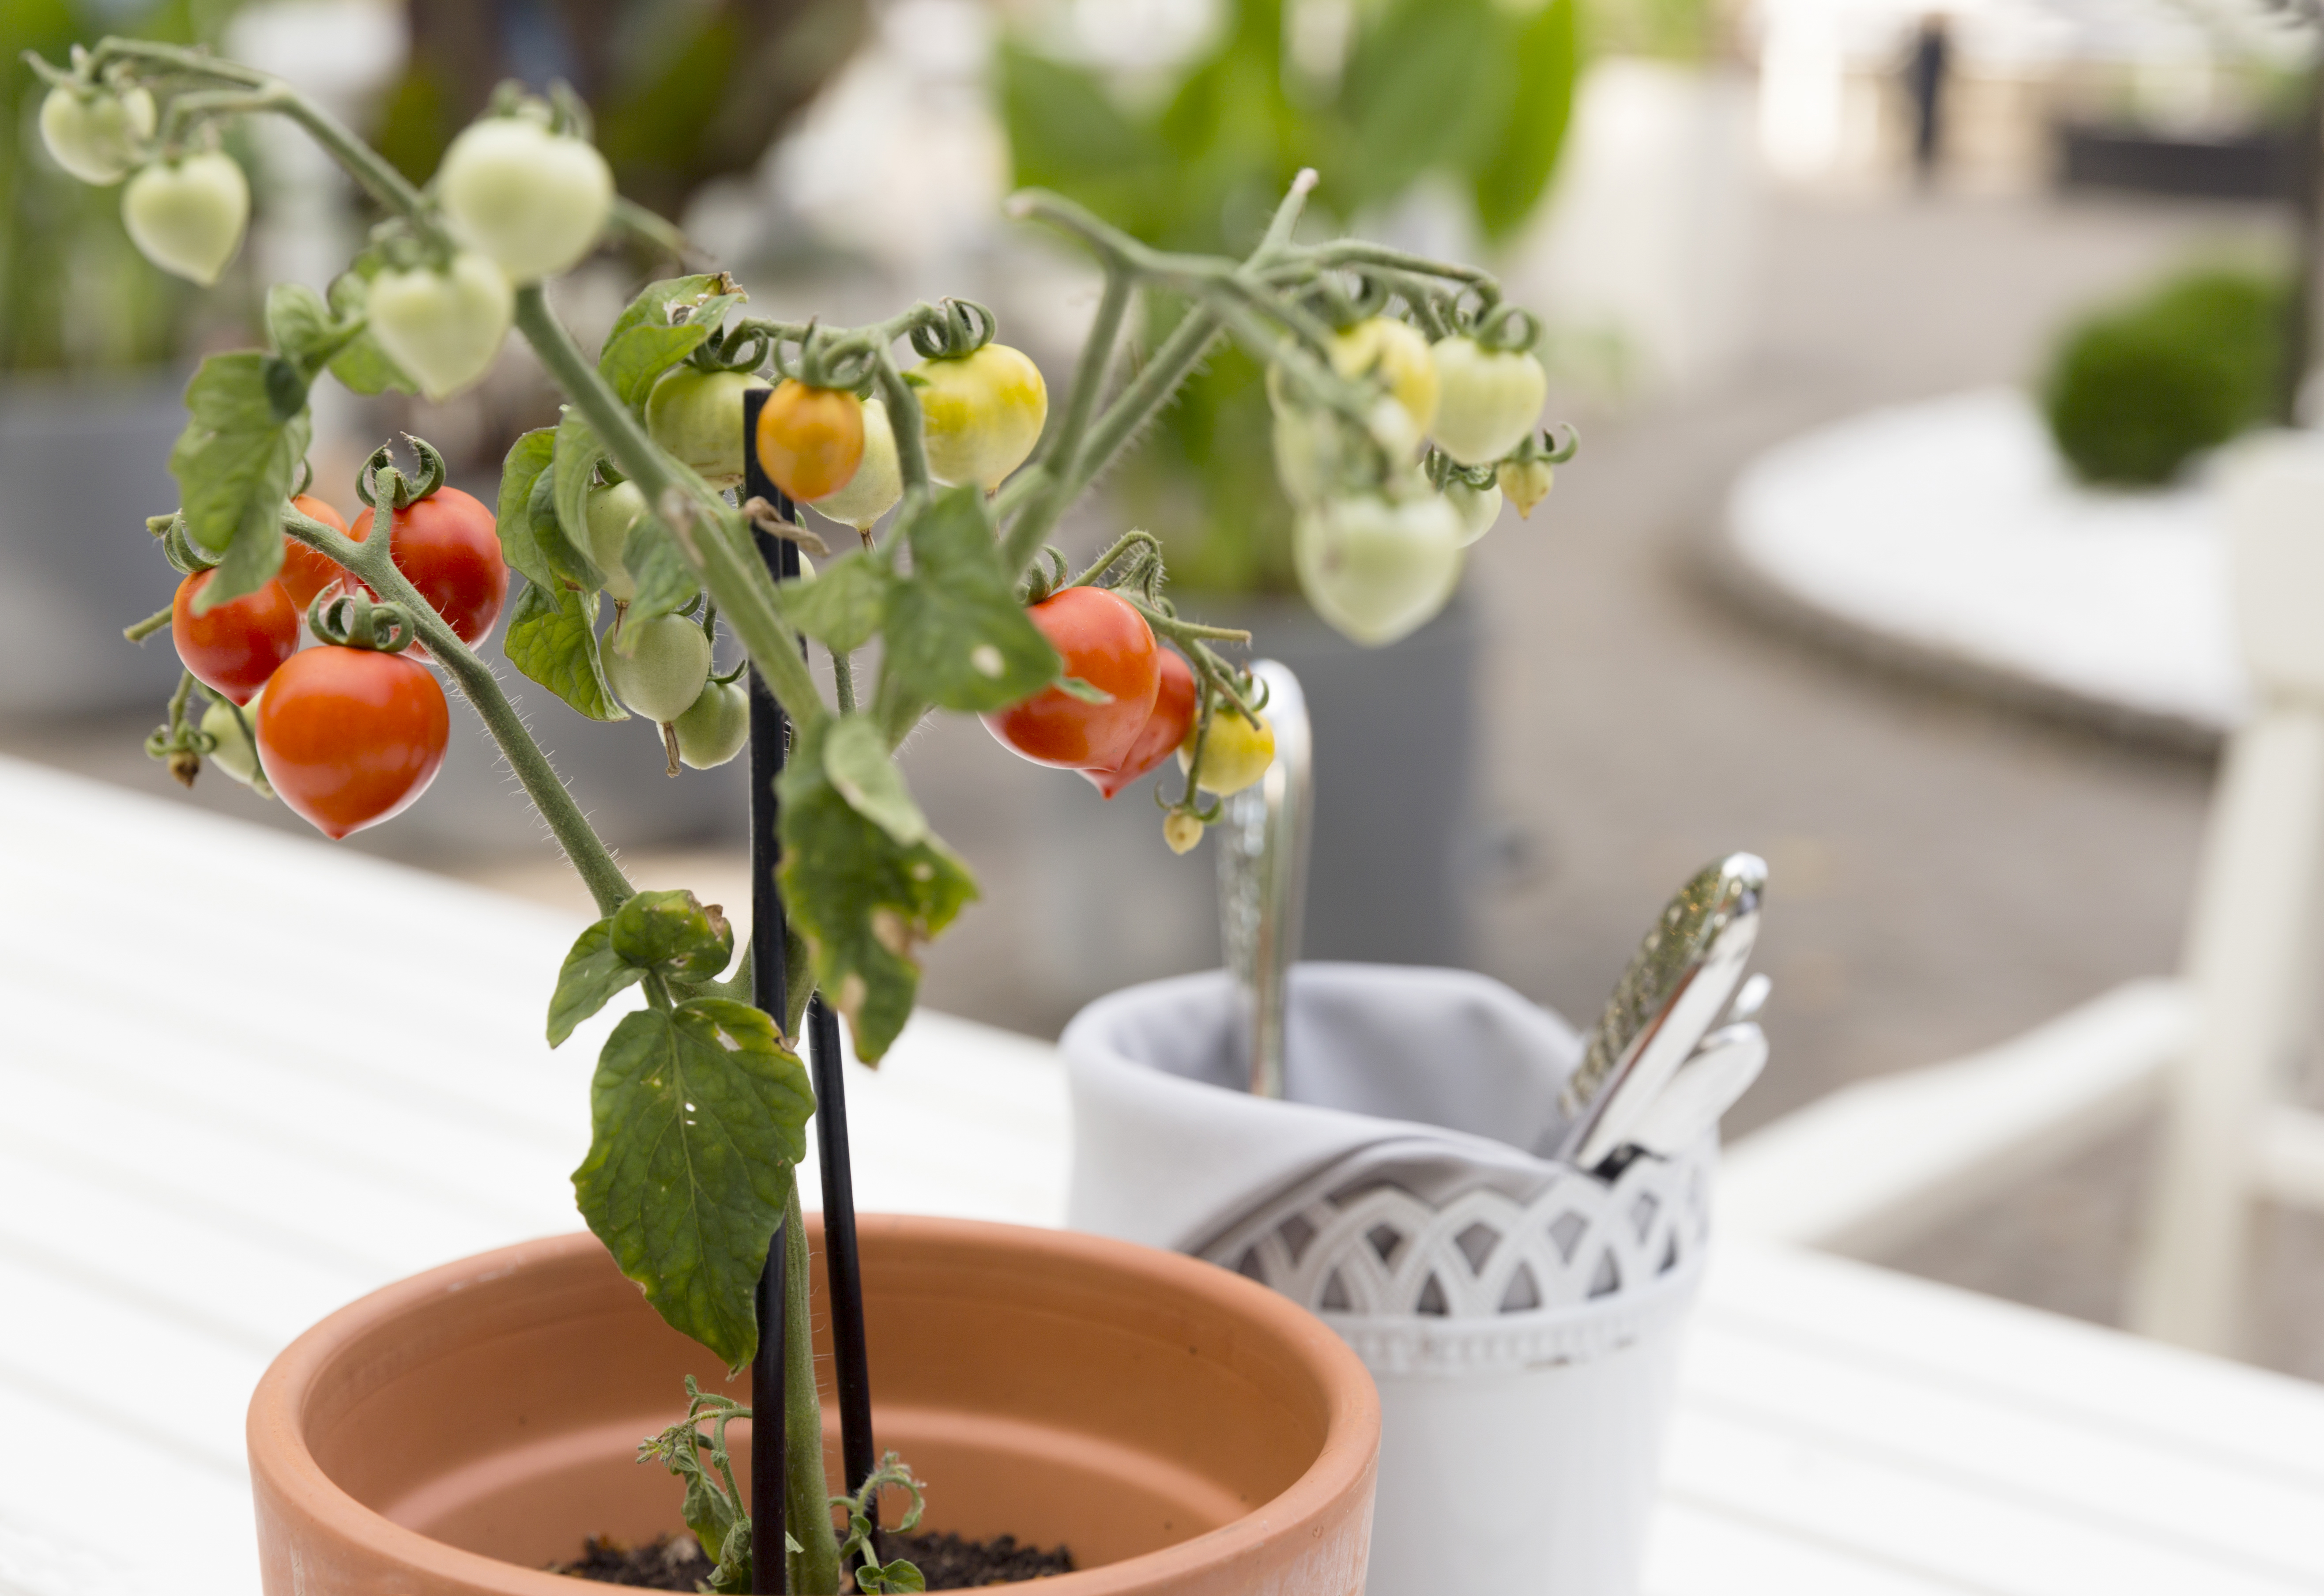 Growing Vegetables Indoors Is Easier Than You Think (Even in an Apartment)